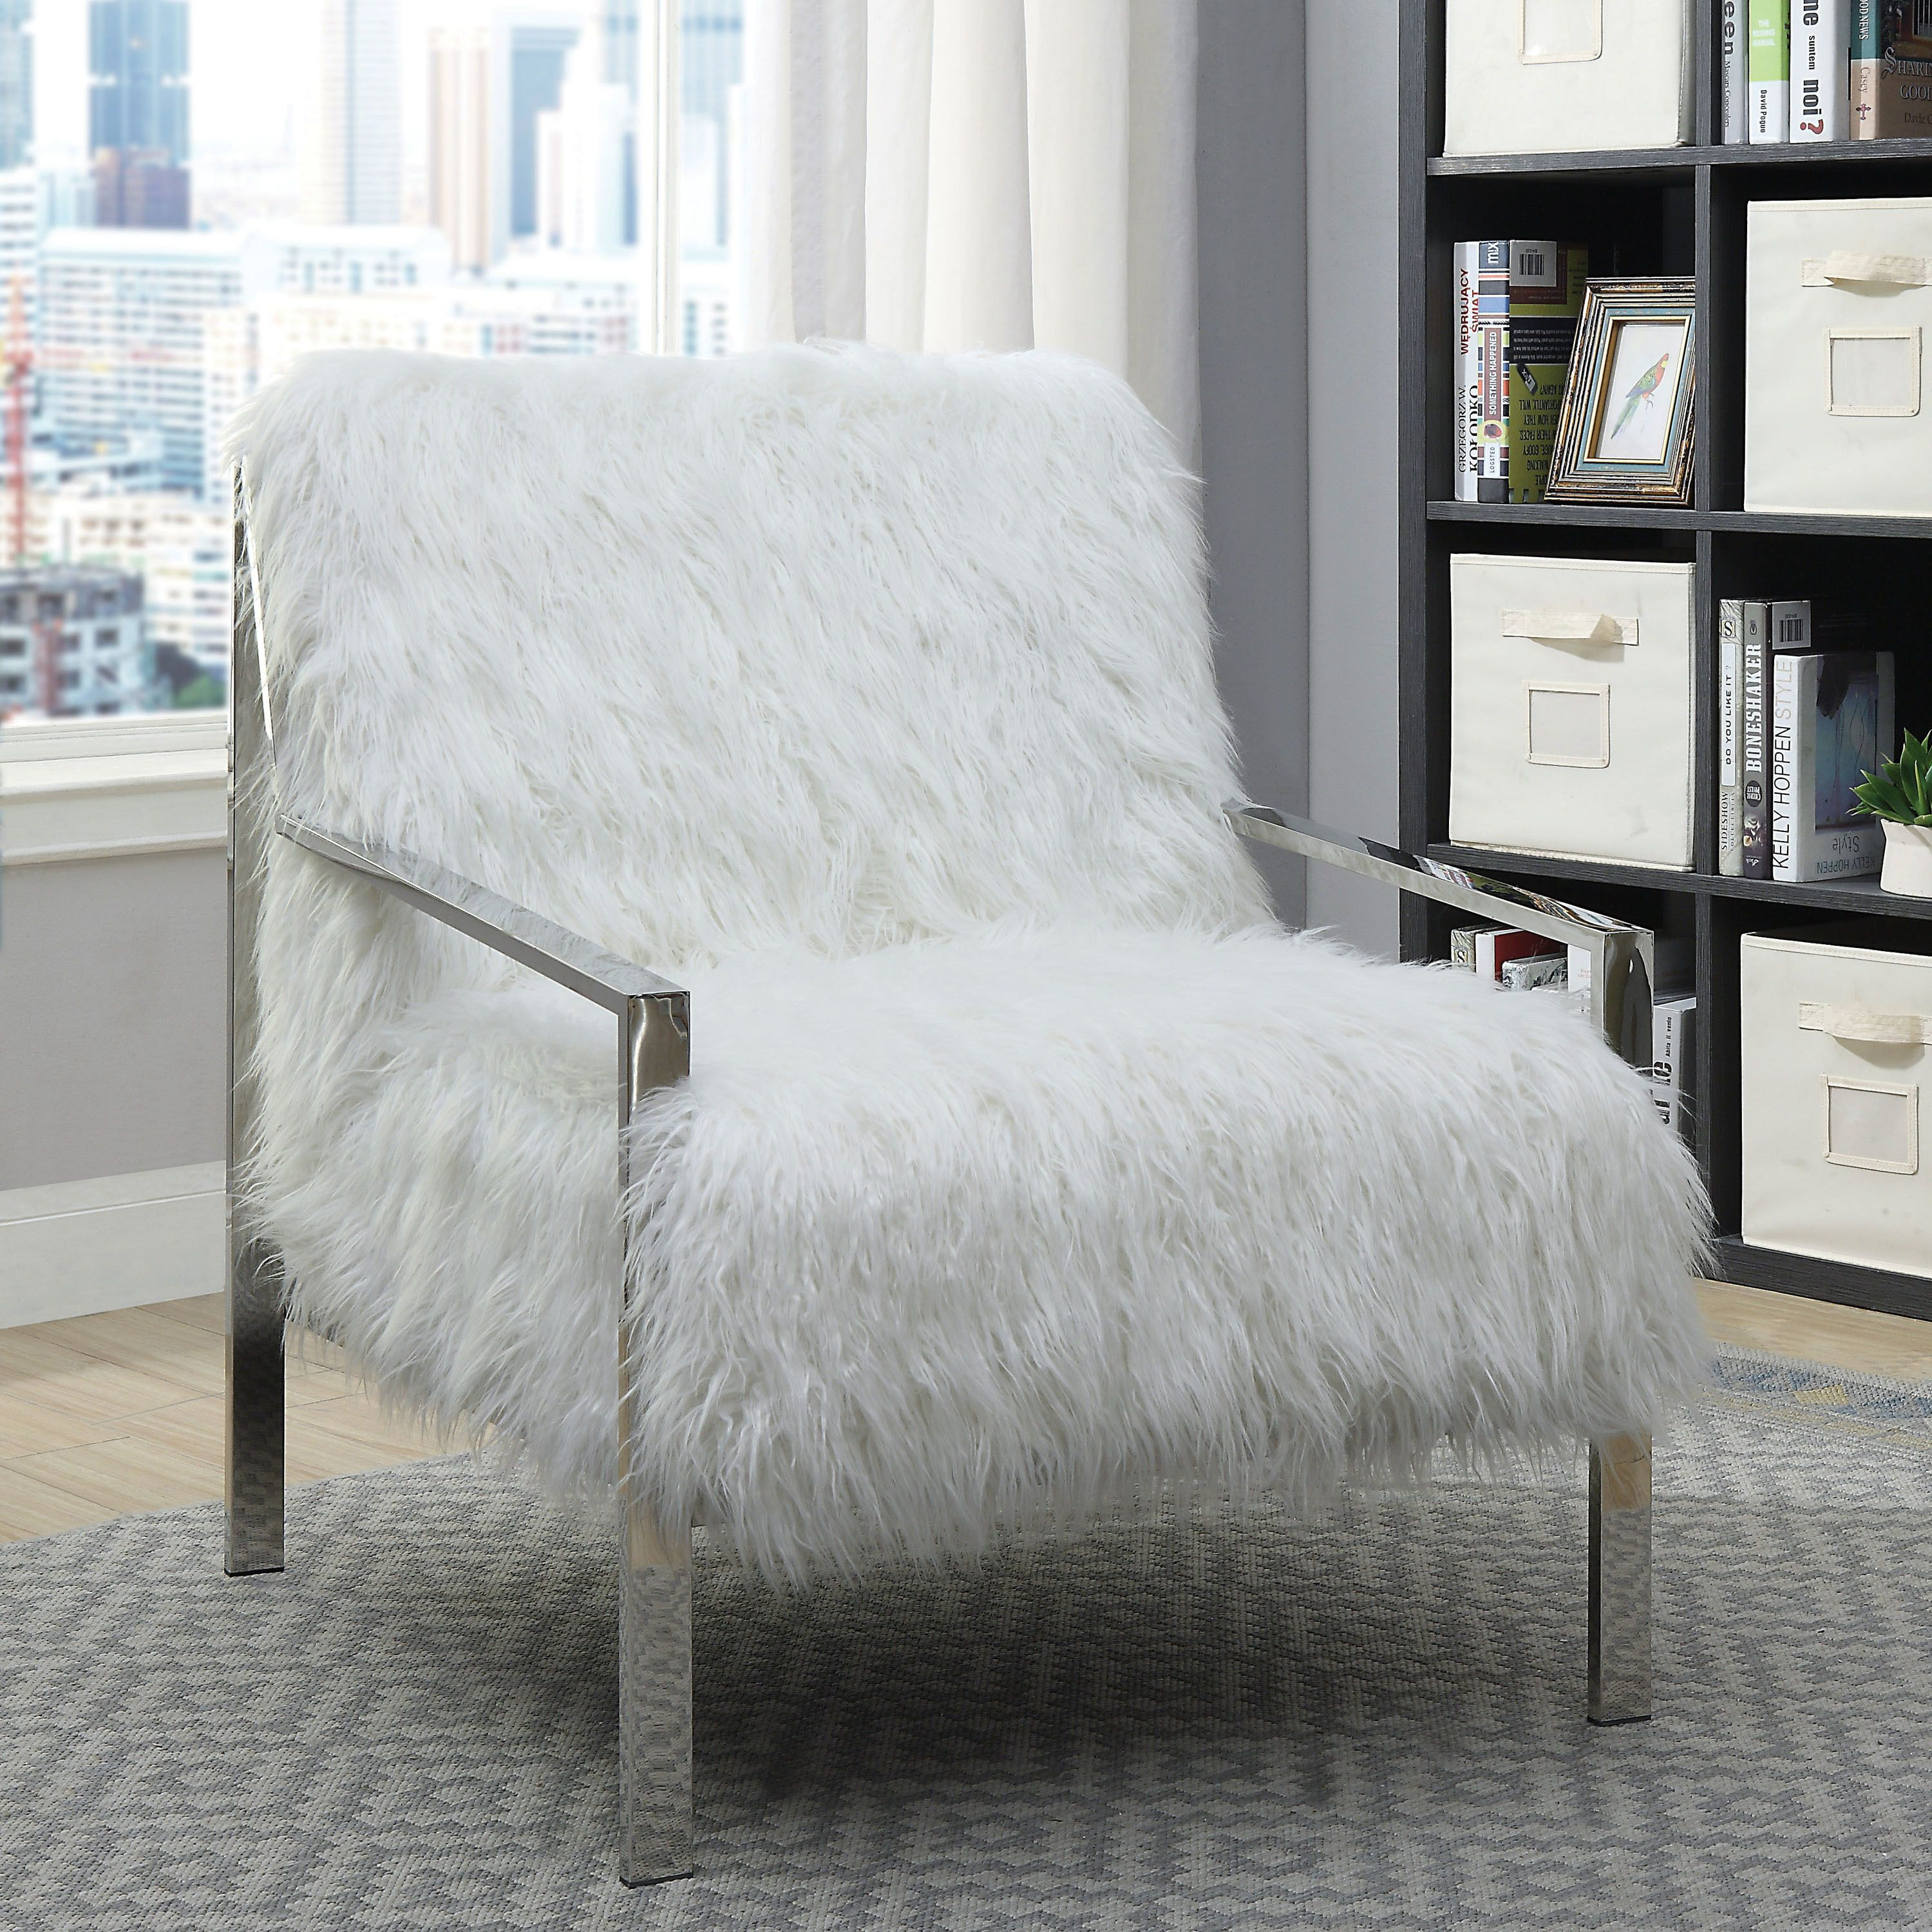 America Accent Chairs.Furniture Of America Delta Contemporary Faux Fur Accent Chair Black